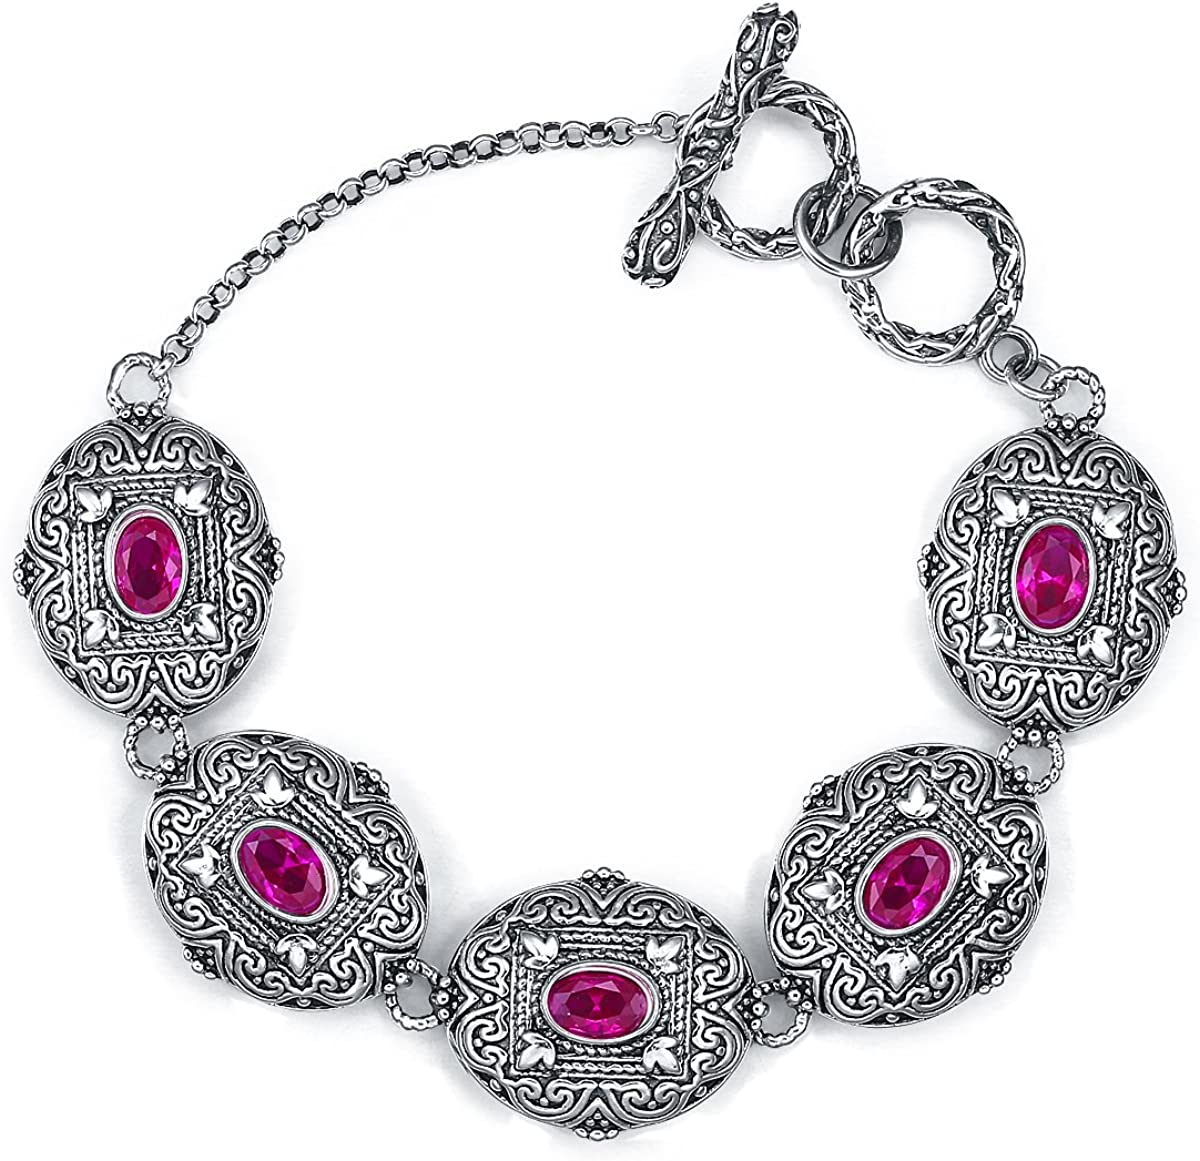 Sterling Silver bracelet with Ruby charms